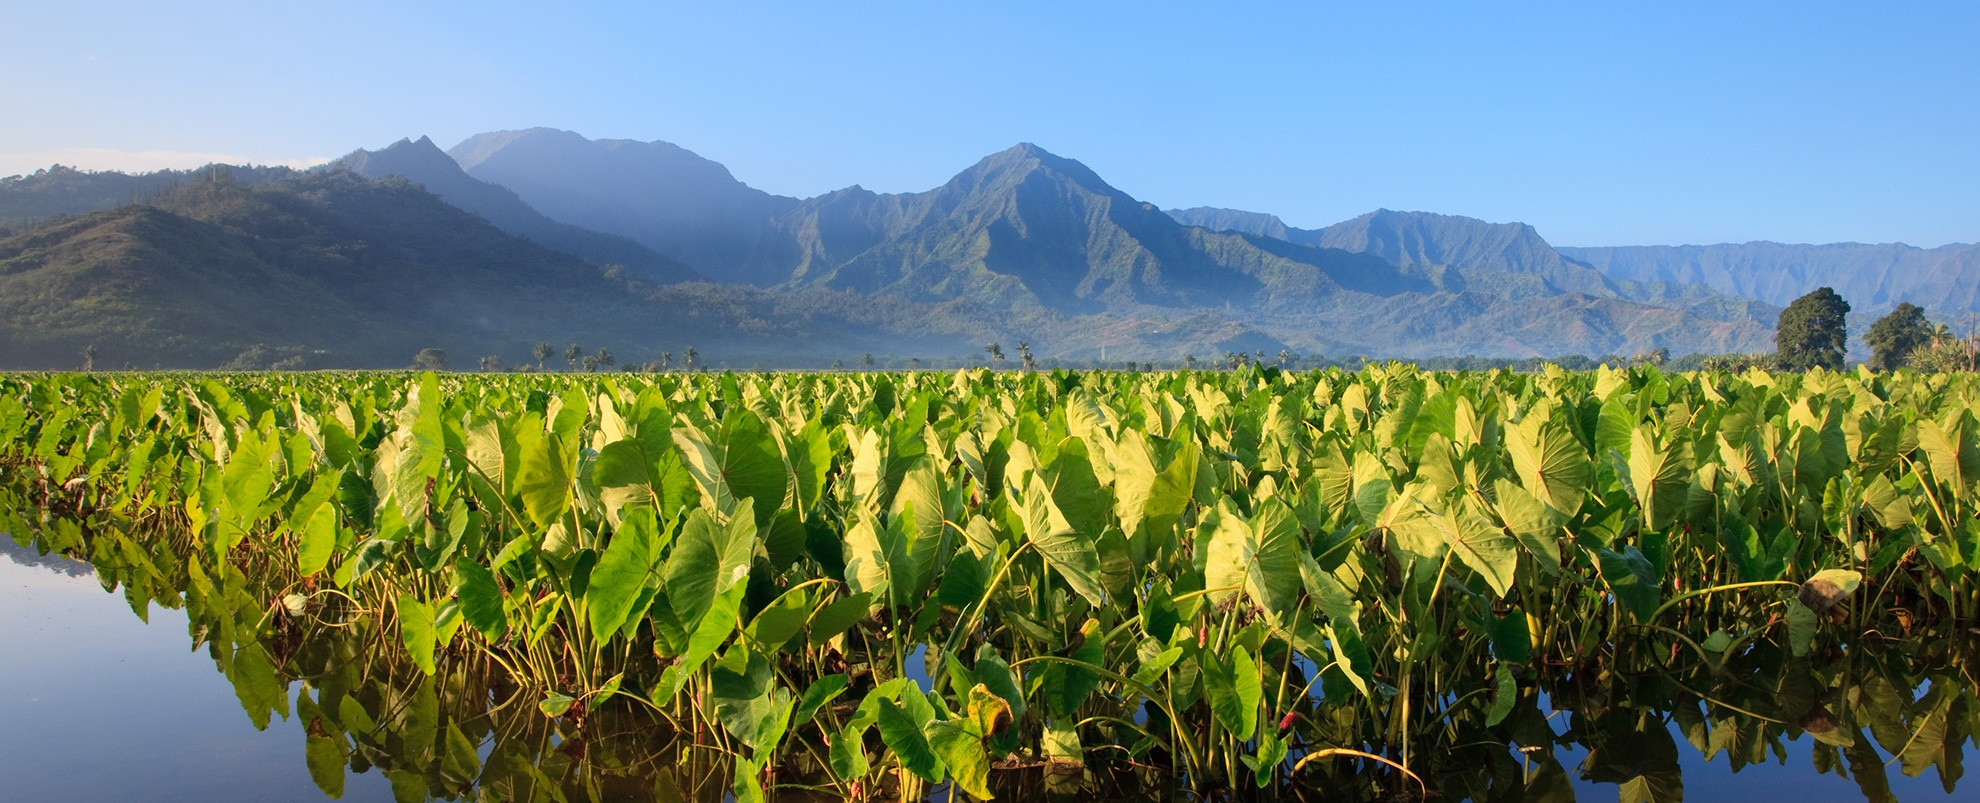 Reflection of Taro plants in Hanalei valley on Kaua'i, with the Na Pali mountains in the background.